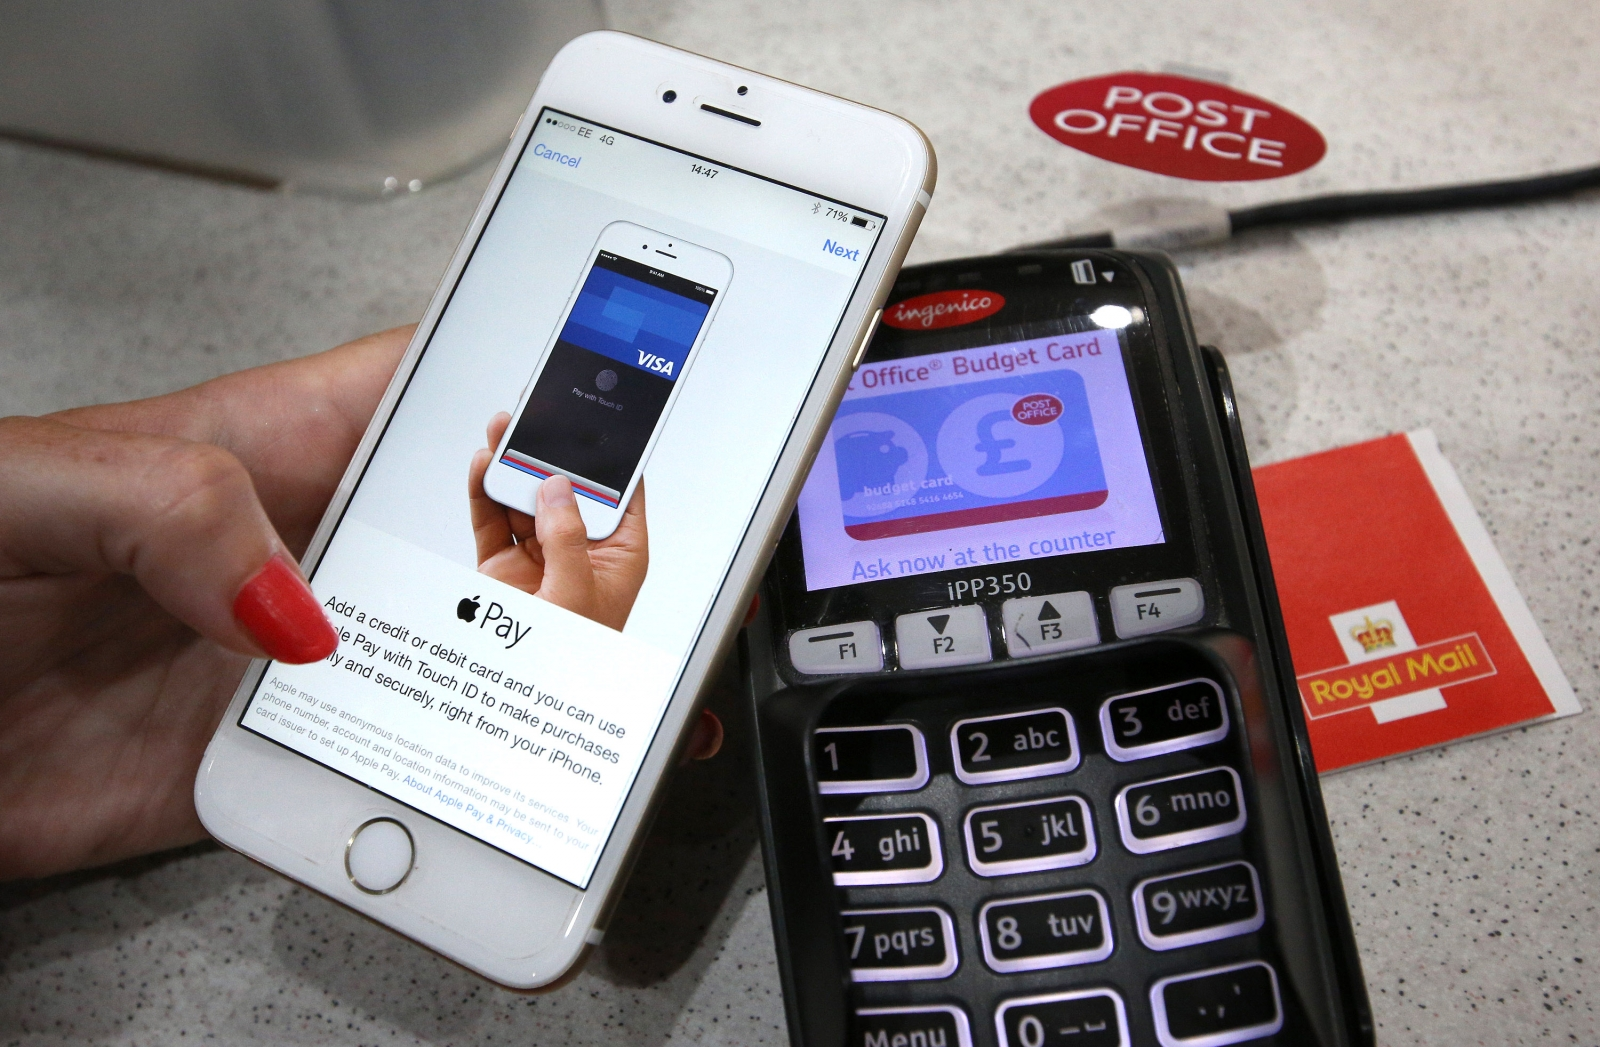 Apple and Visa face patent infringement lawsuit over Apple Pay